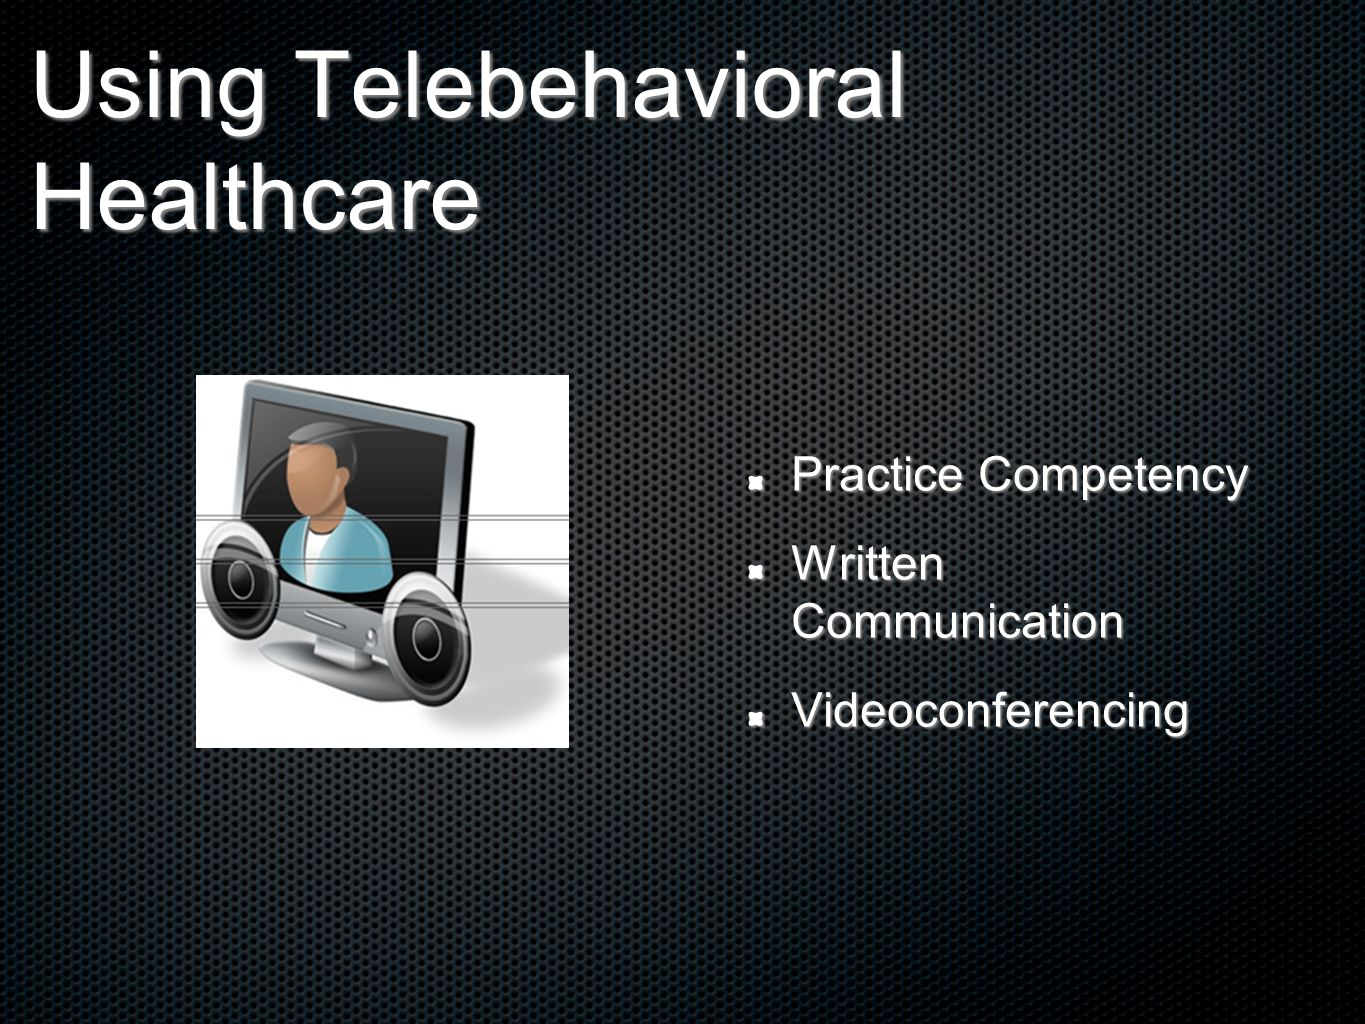 Using Telebehavioral Healthcare Practice Competency Written Communication Videoconferencing